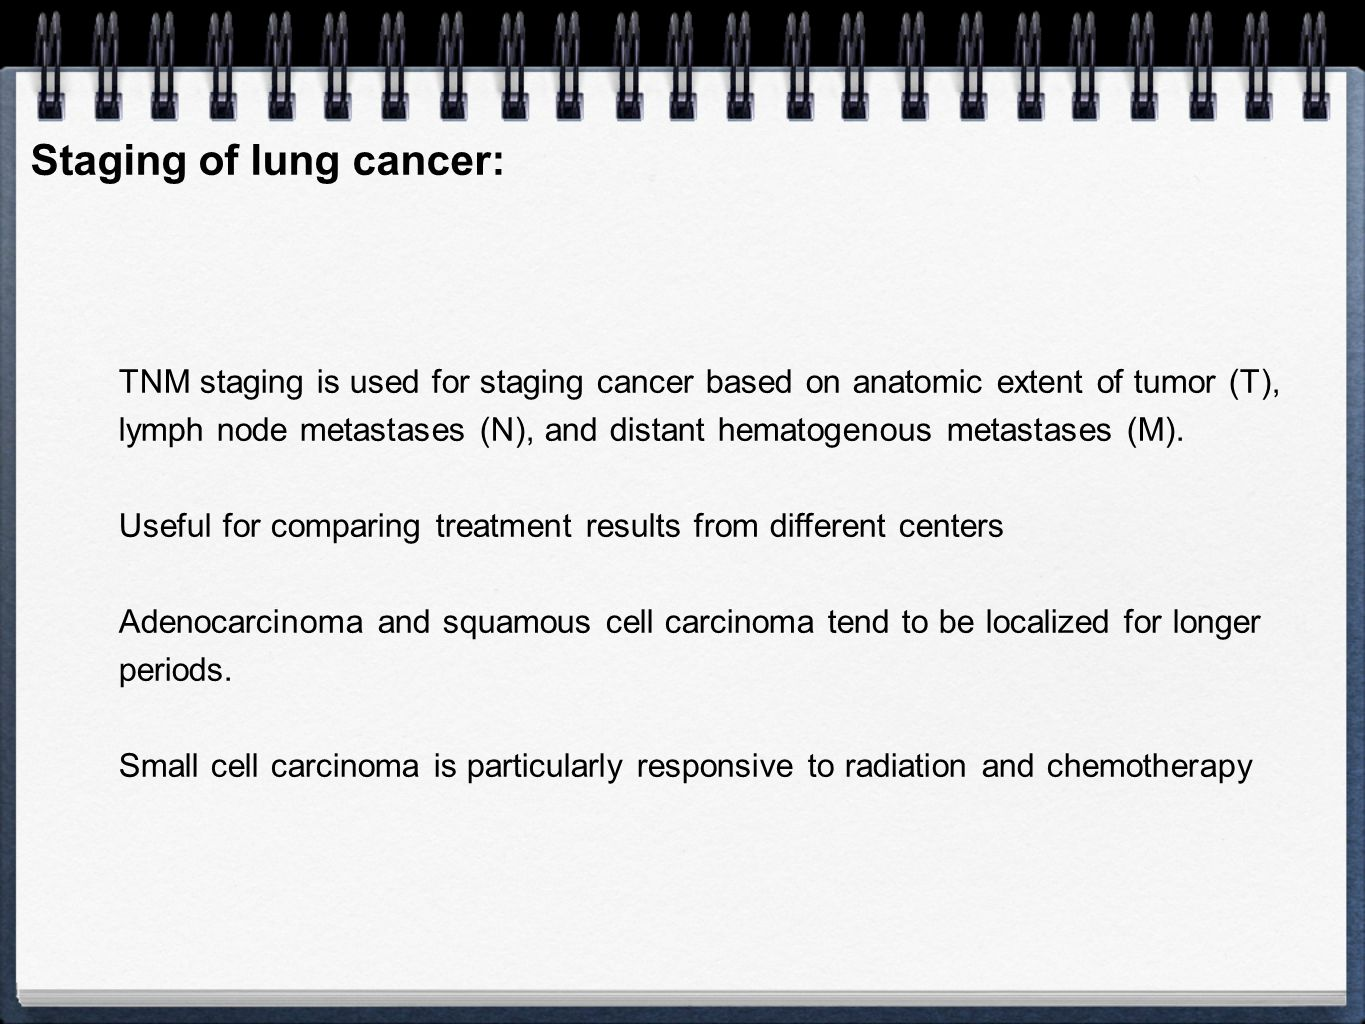 Staging of lung cancer: